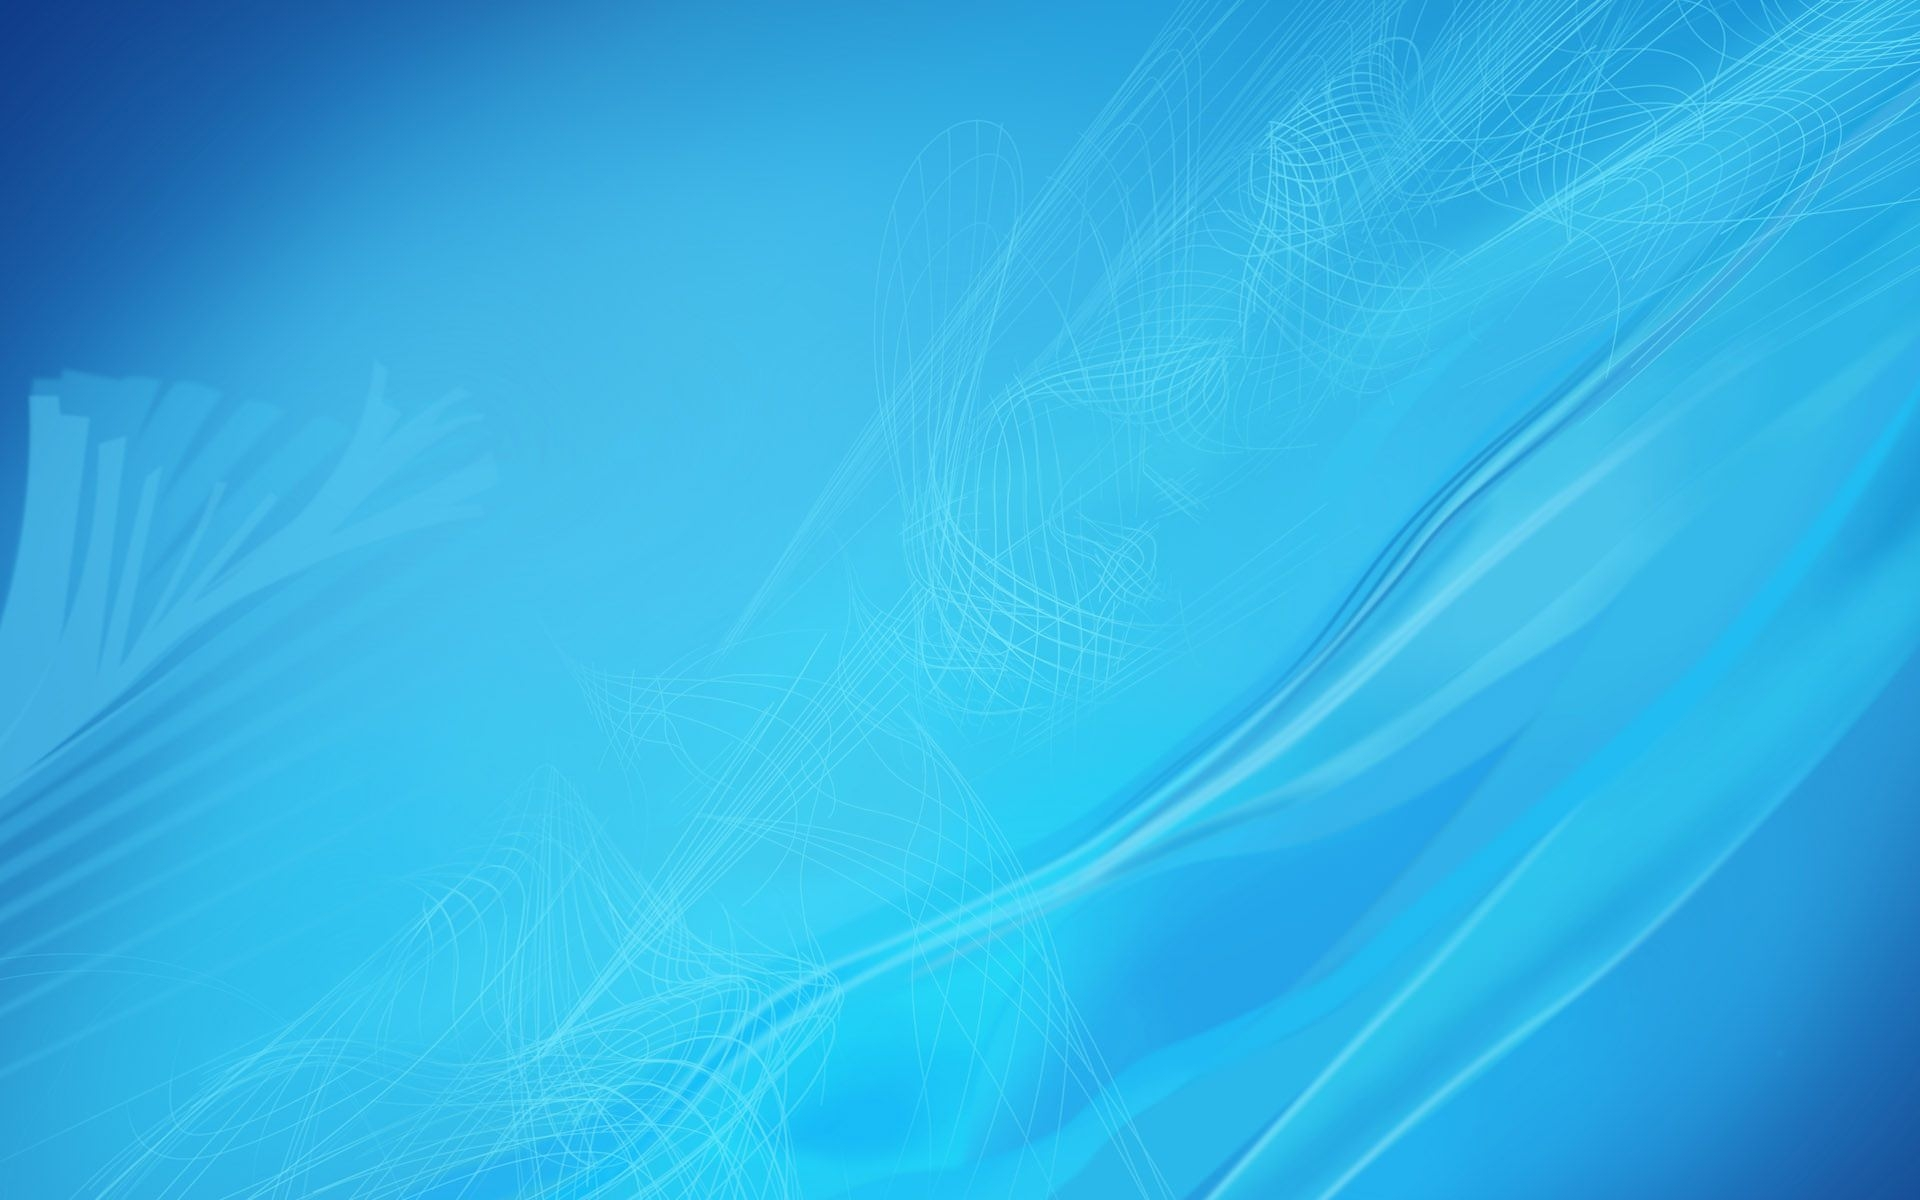 Amazing Blue Abstract Wallpaper